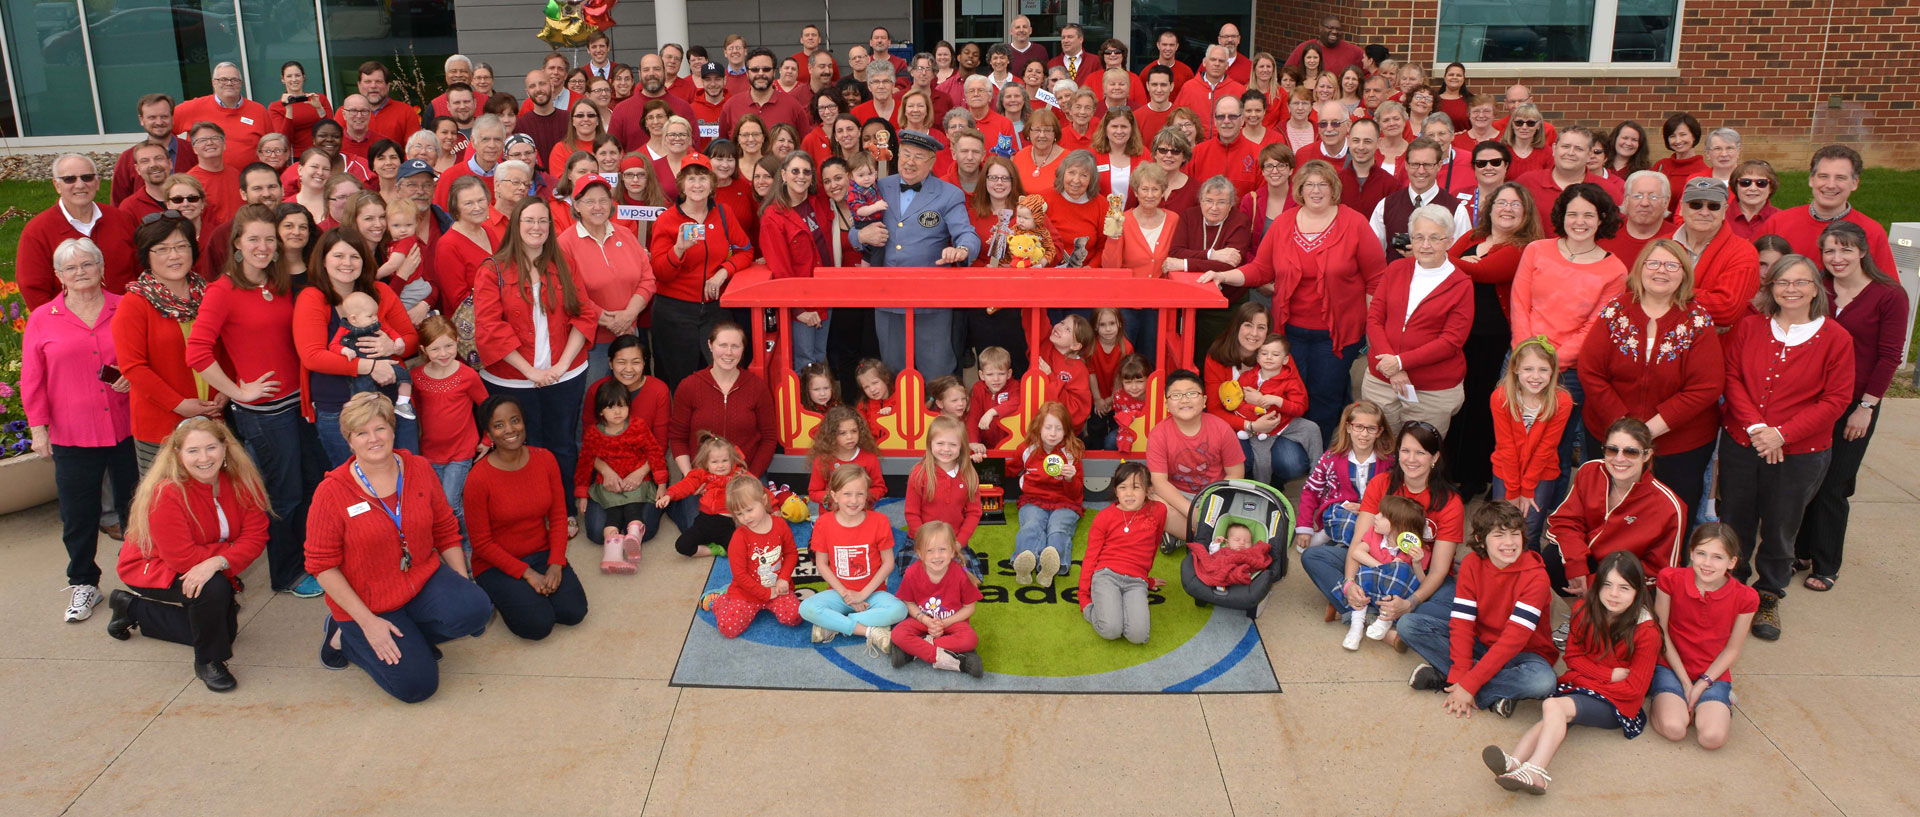 Large group of people dressed in red sweaters to support Red Sweater Day at WPSU